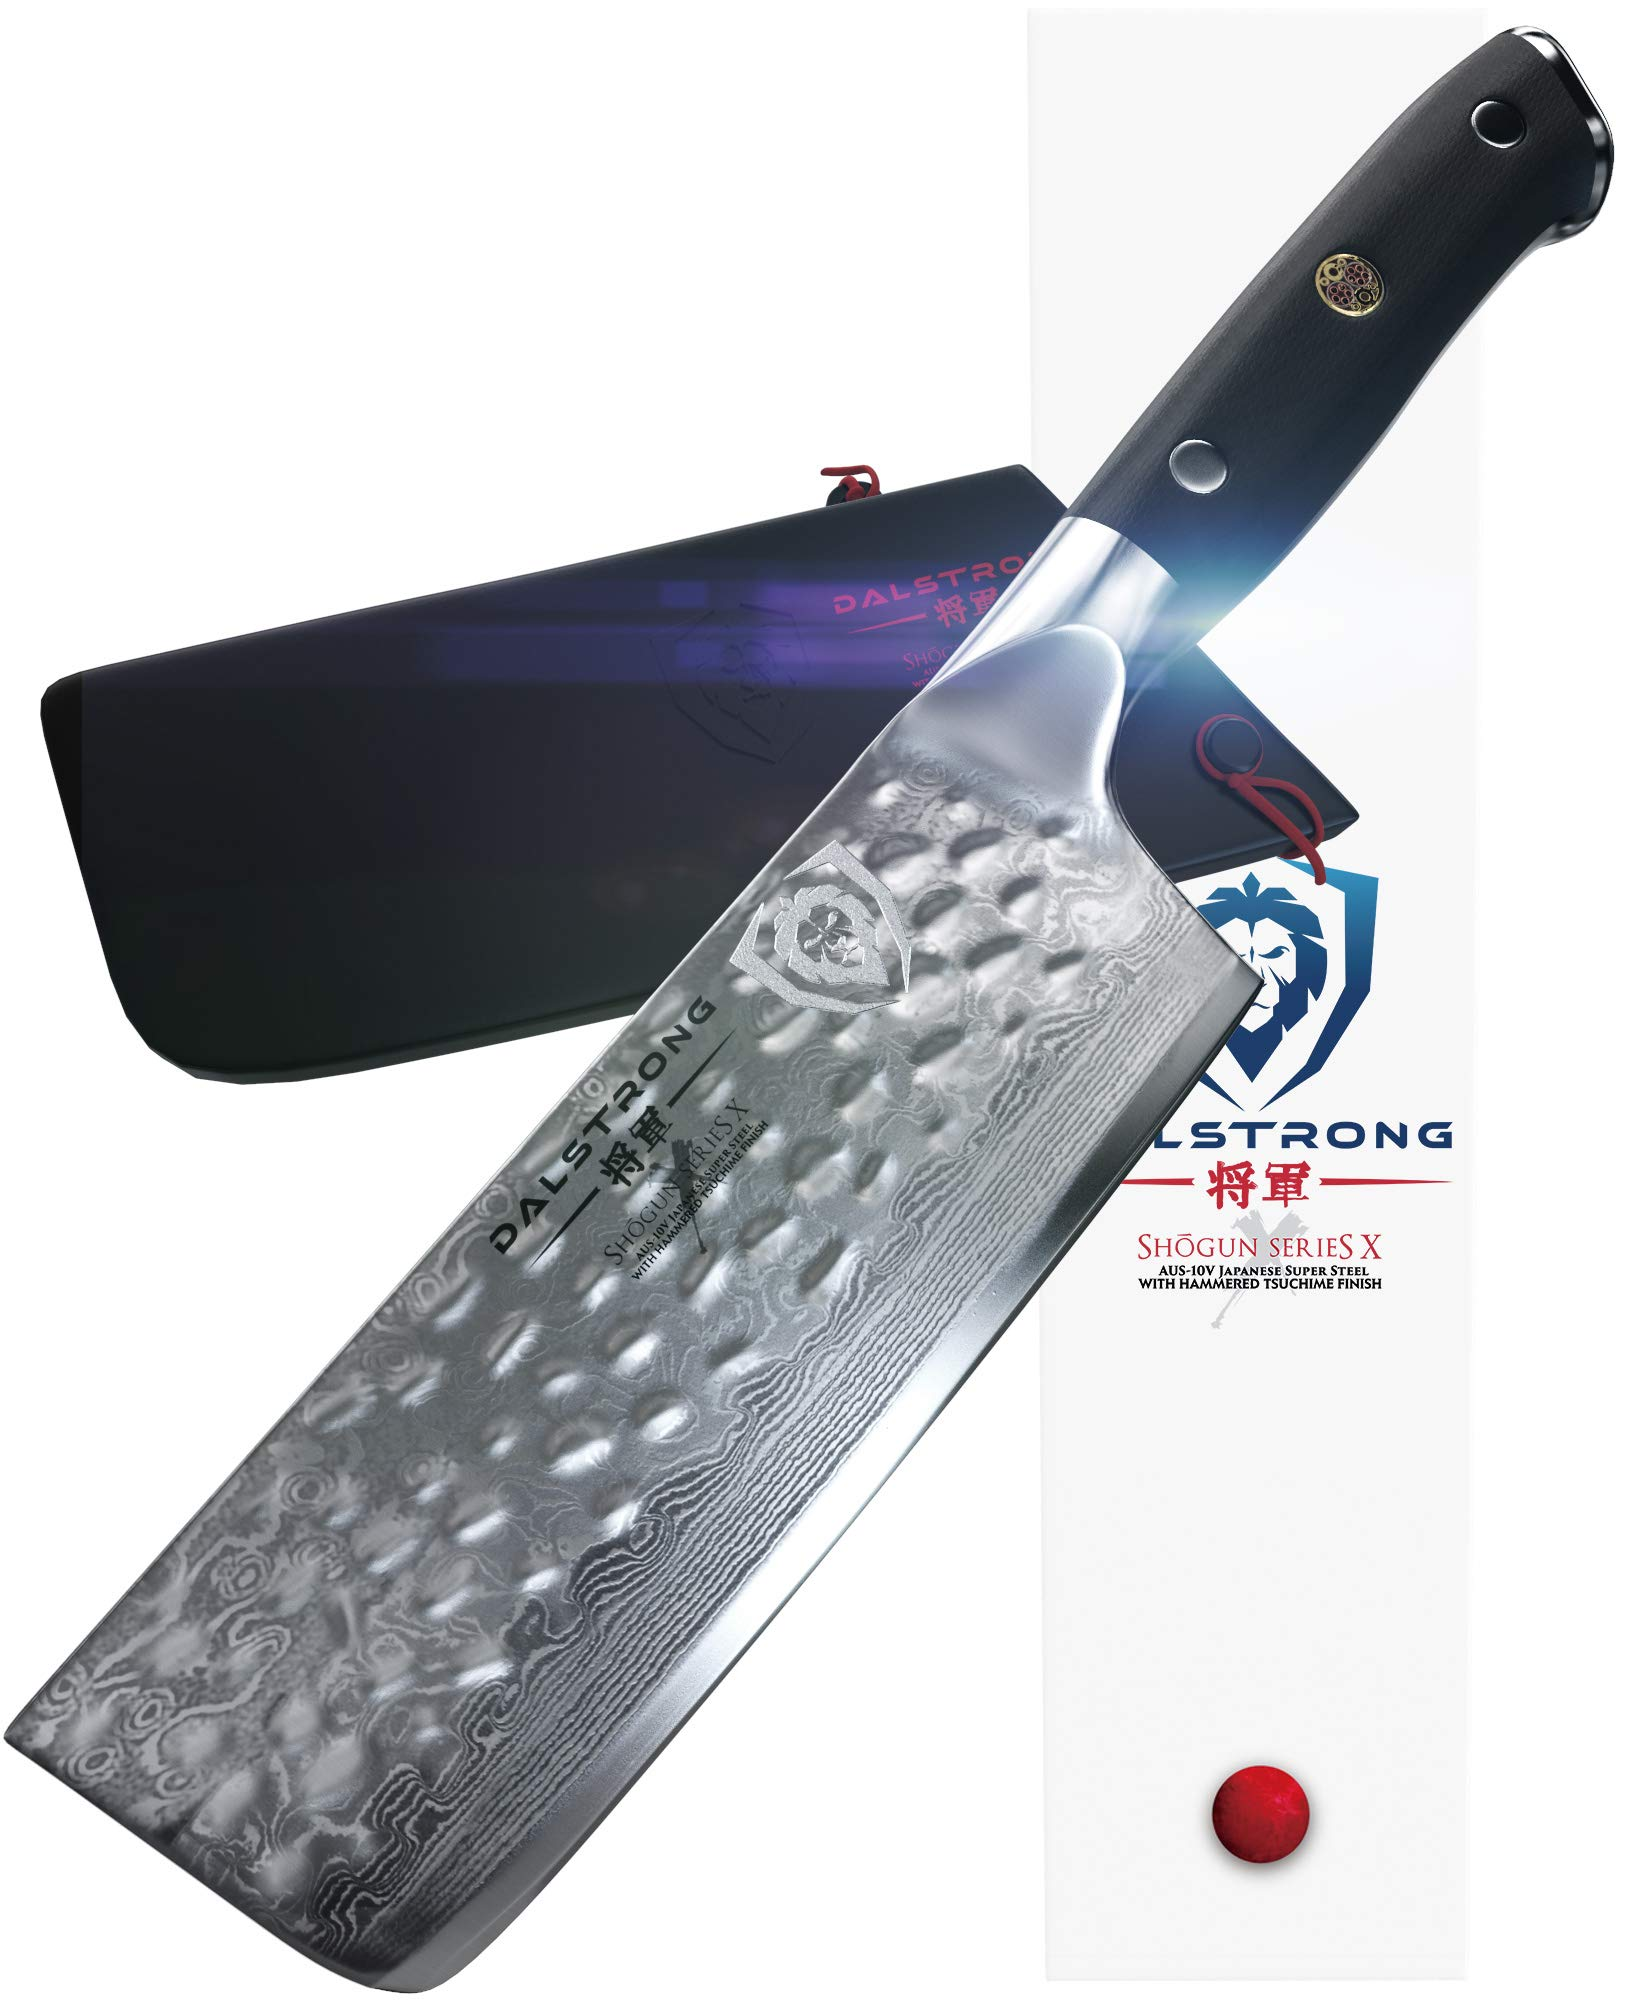 DALSTRONG Nakiri Vegetable Knife - Shogun Series X - AUS-10-V - Damascus - Hammered Finish - 6'' (152mm)